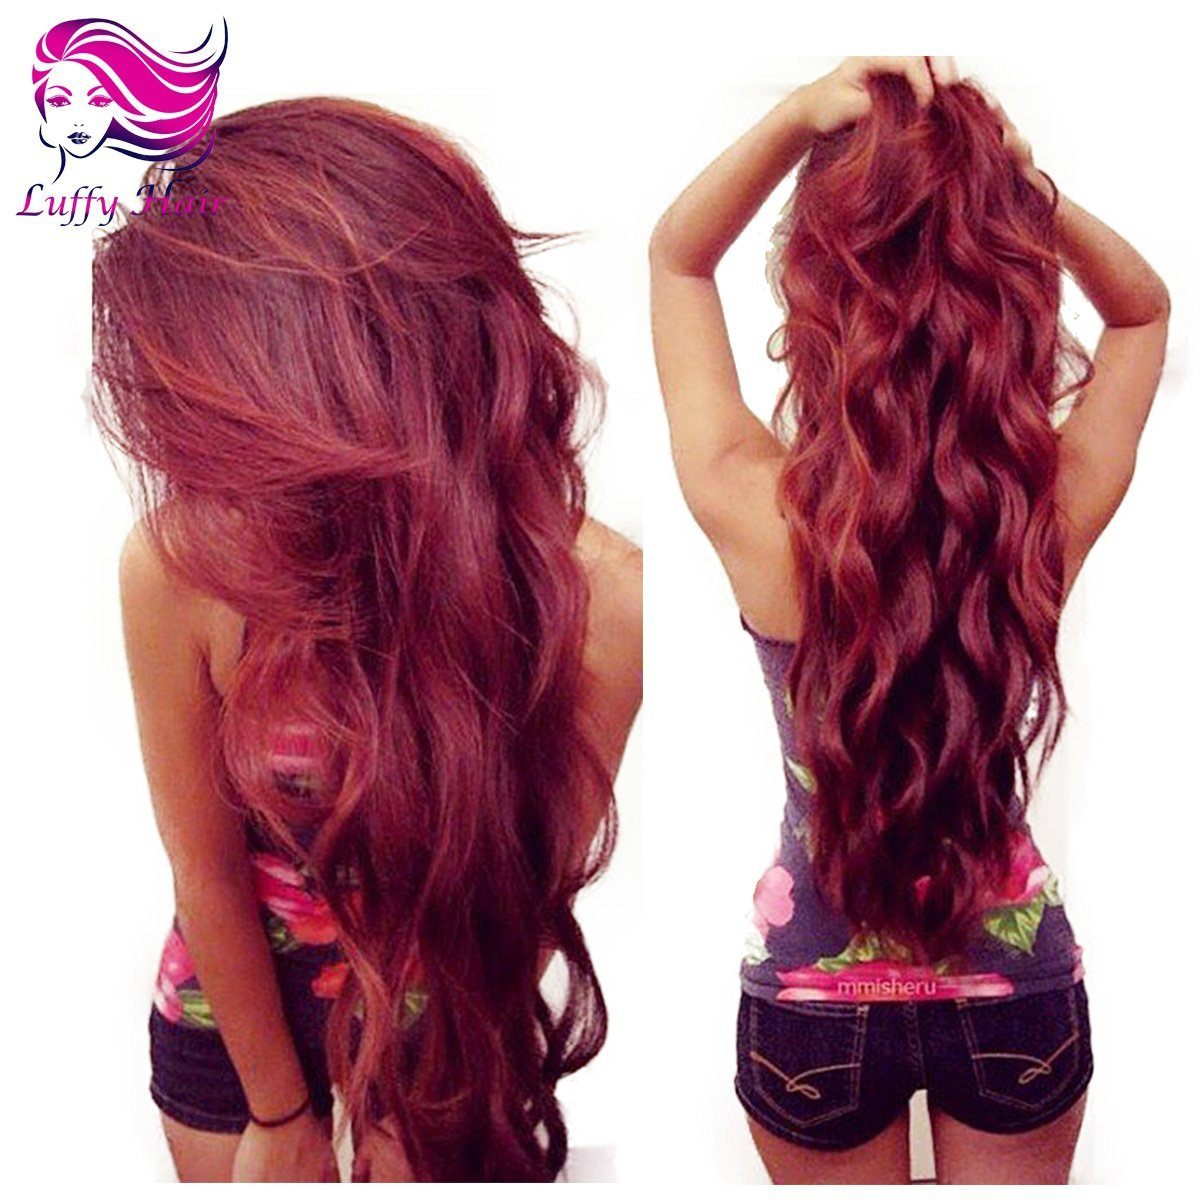 10A Virgin Human Hair Burgundy Body Wave Wig - KWL006